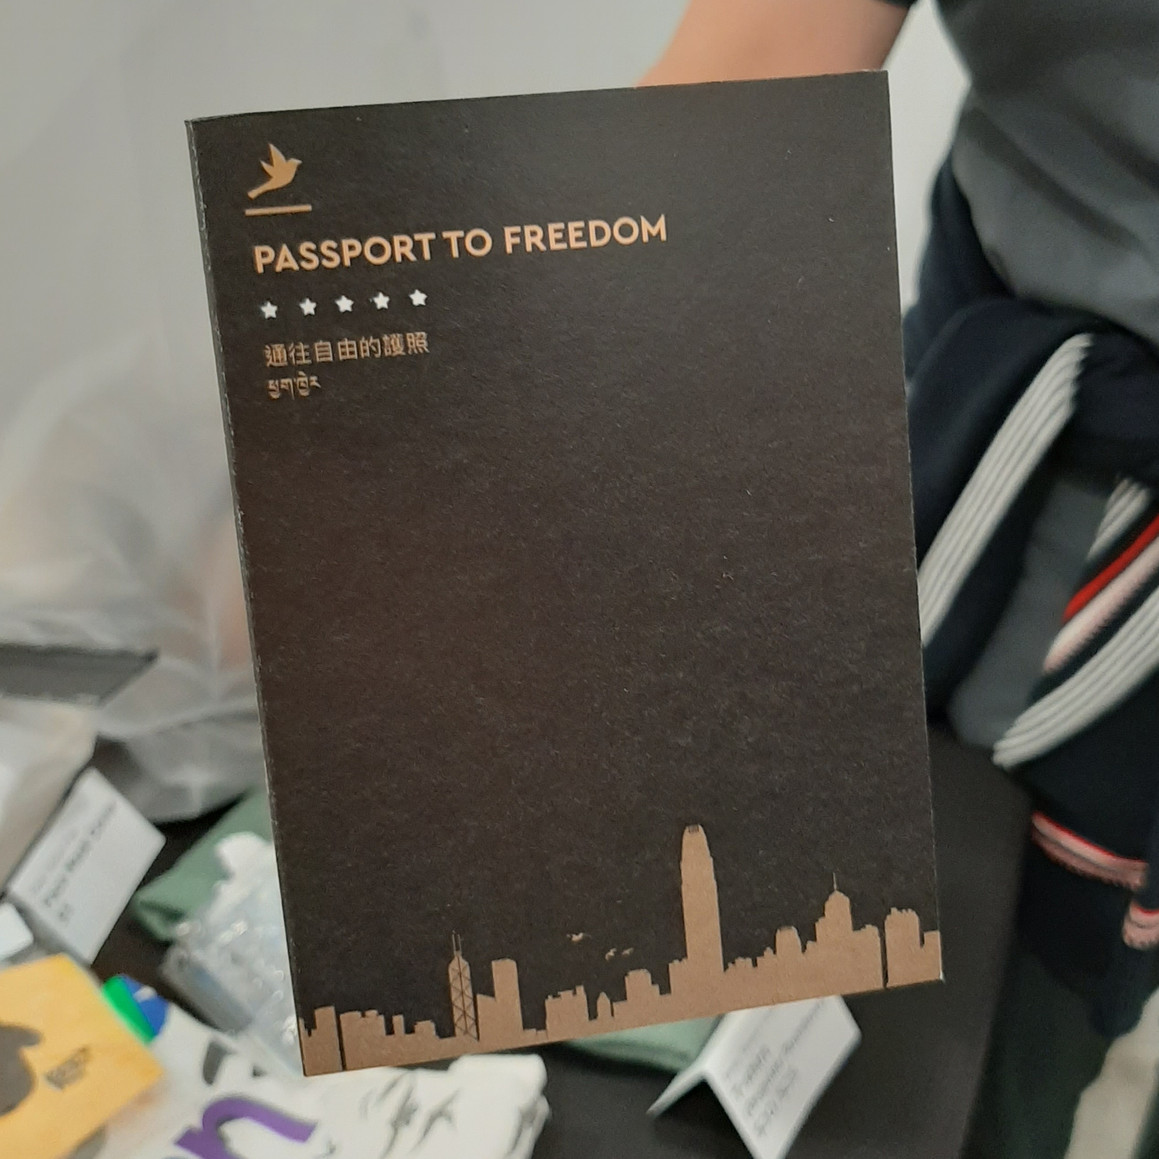 This event exclusive passport, designed by Vicky Fan